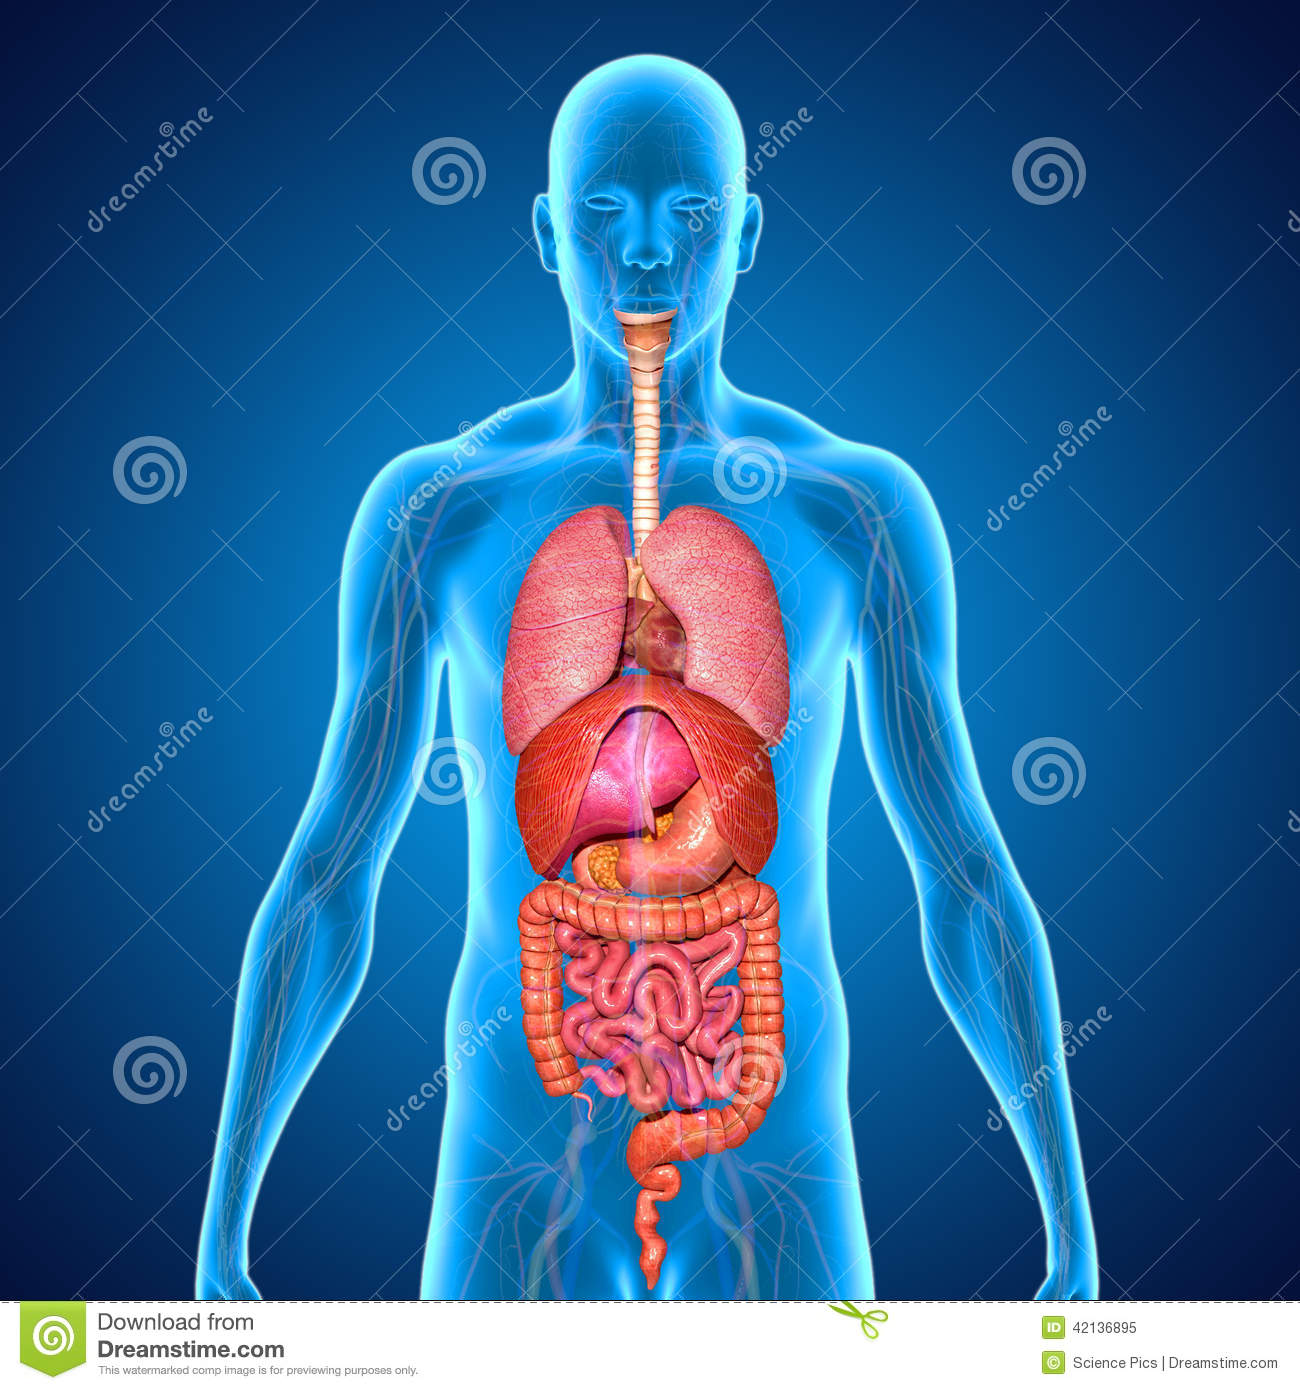 Three facts about human digestive system animation video free download human digestive system animation video free download powerpoint template toneelgroepblik Images